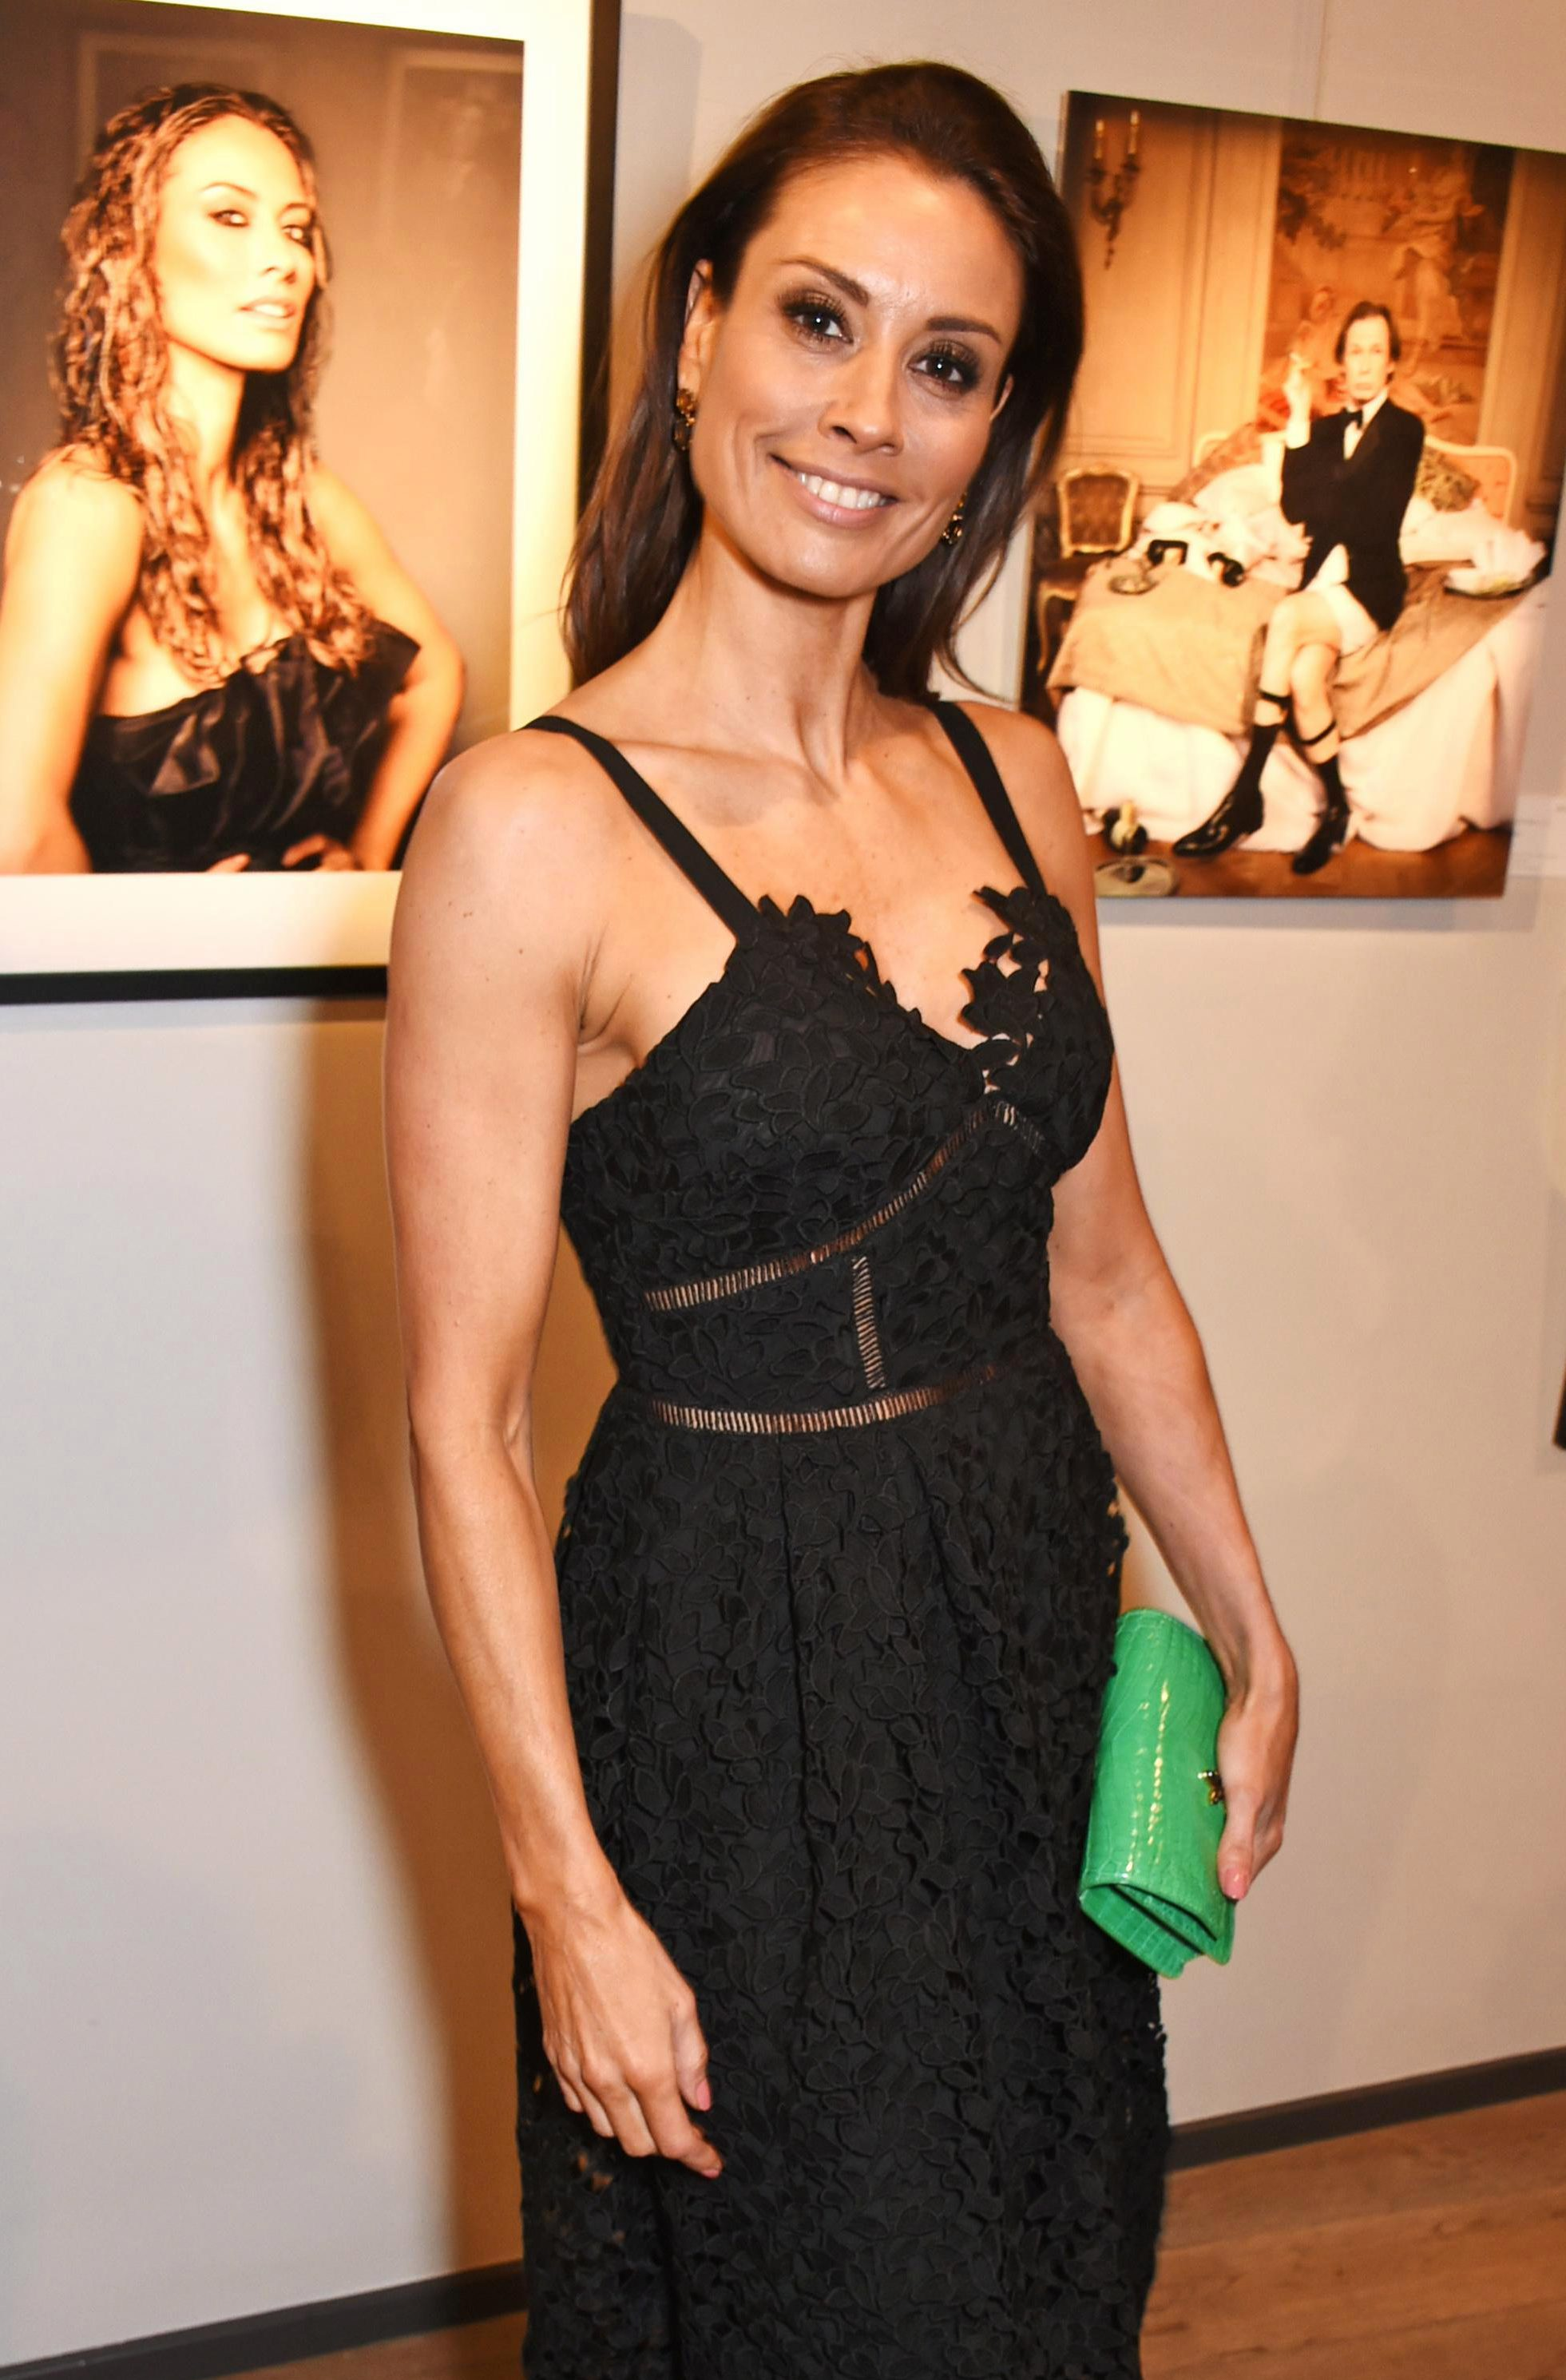 Who is Melanie Sykes and when did she date Steve Coogan and Olly Murs?